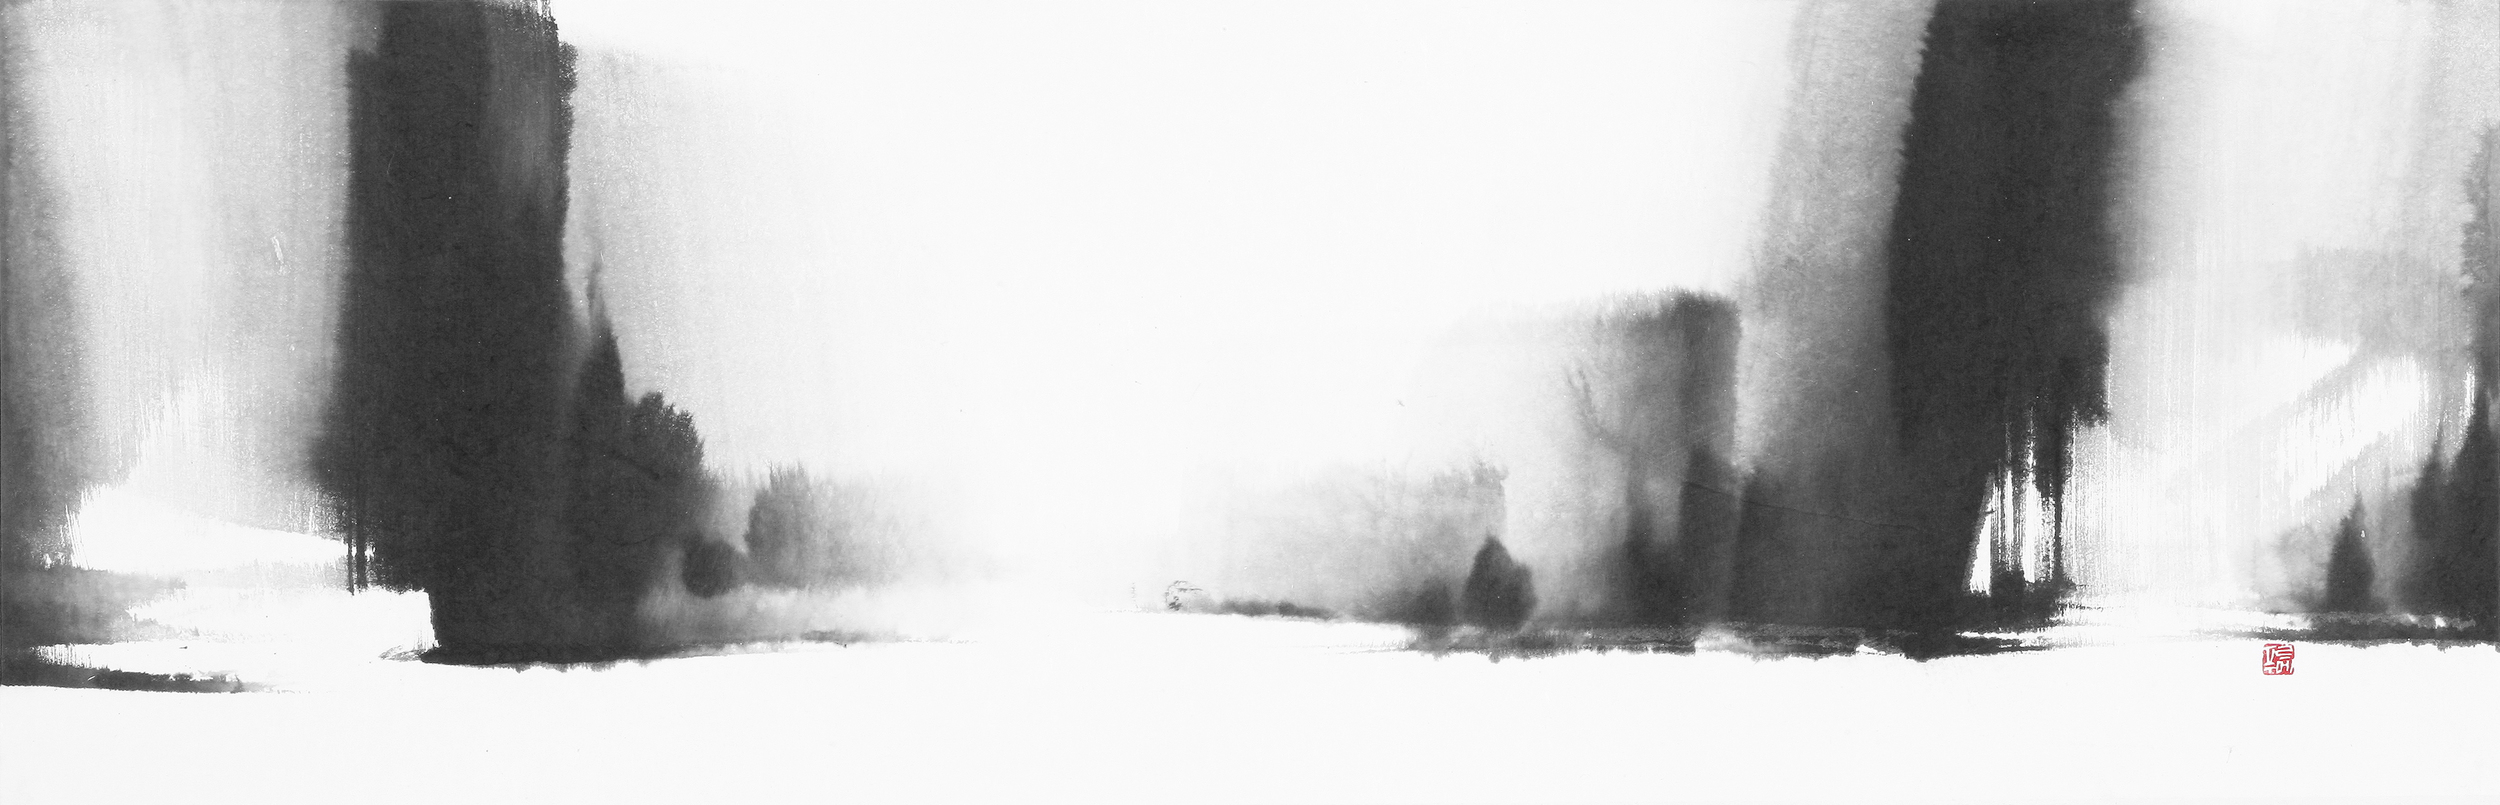 II. Opening of His Light, 46X140cm,ink on paper, 2010.jpg